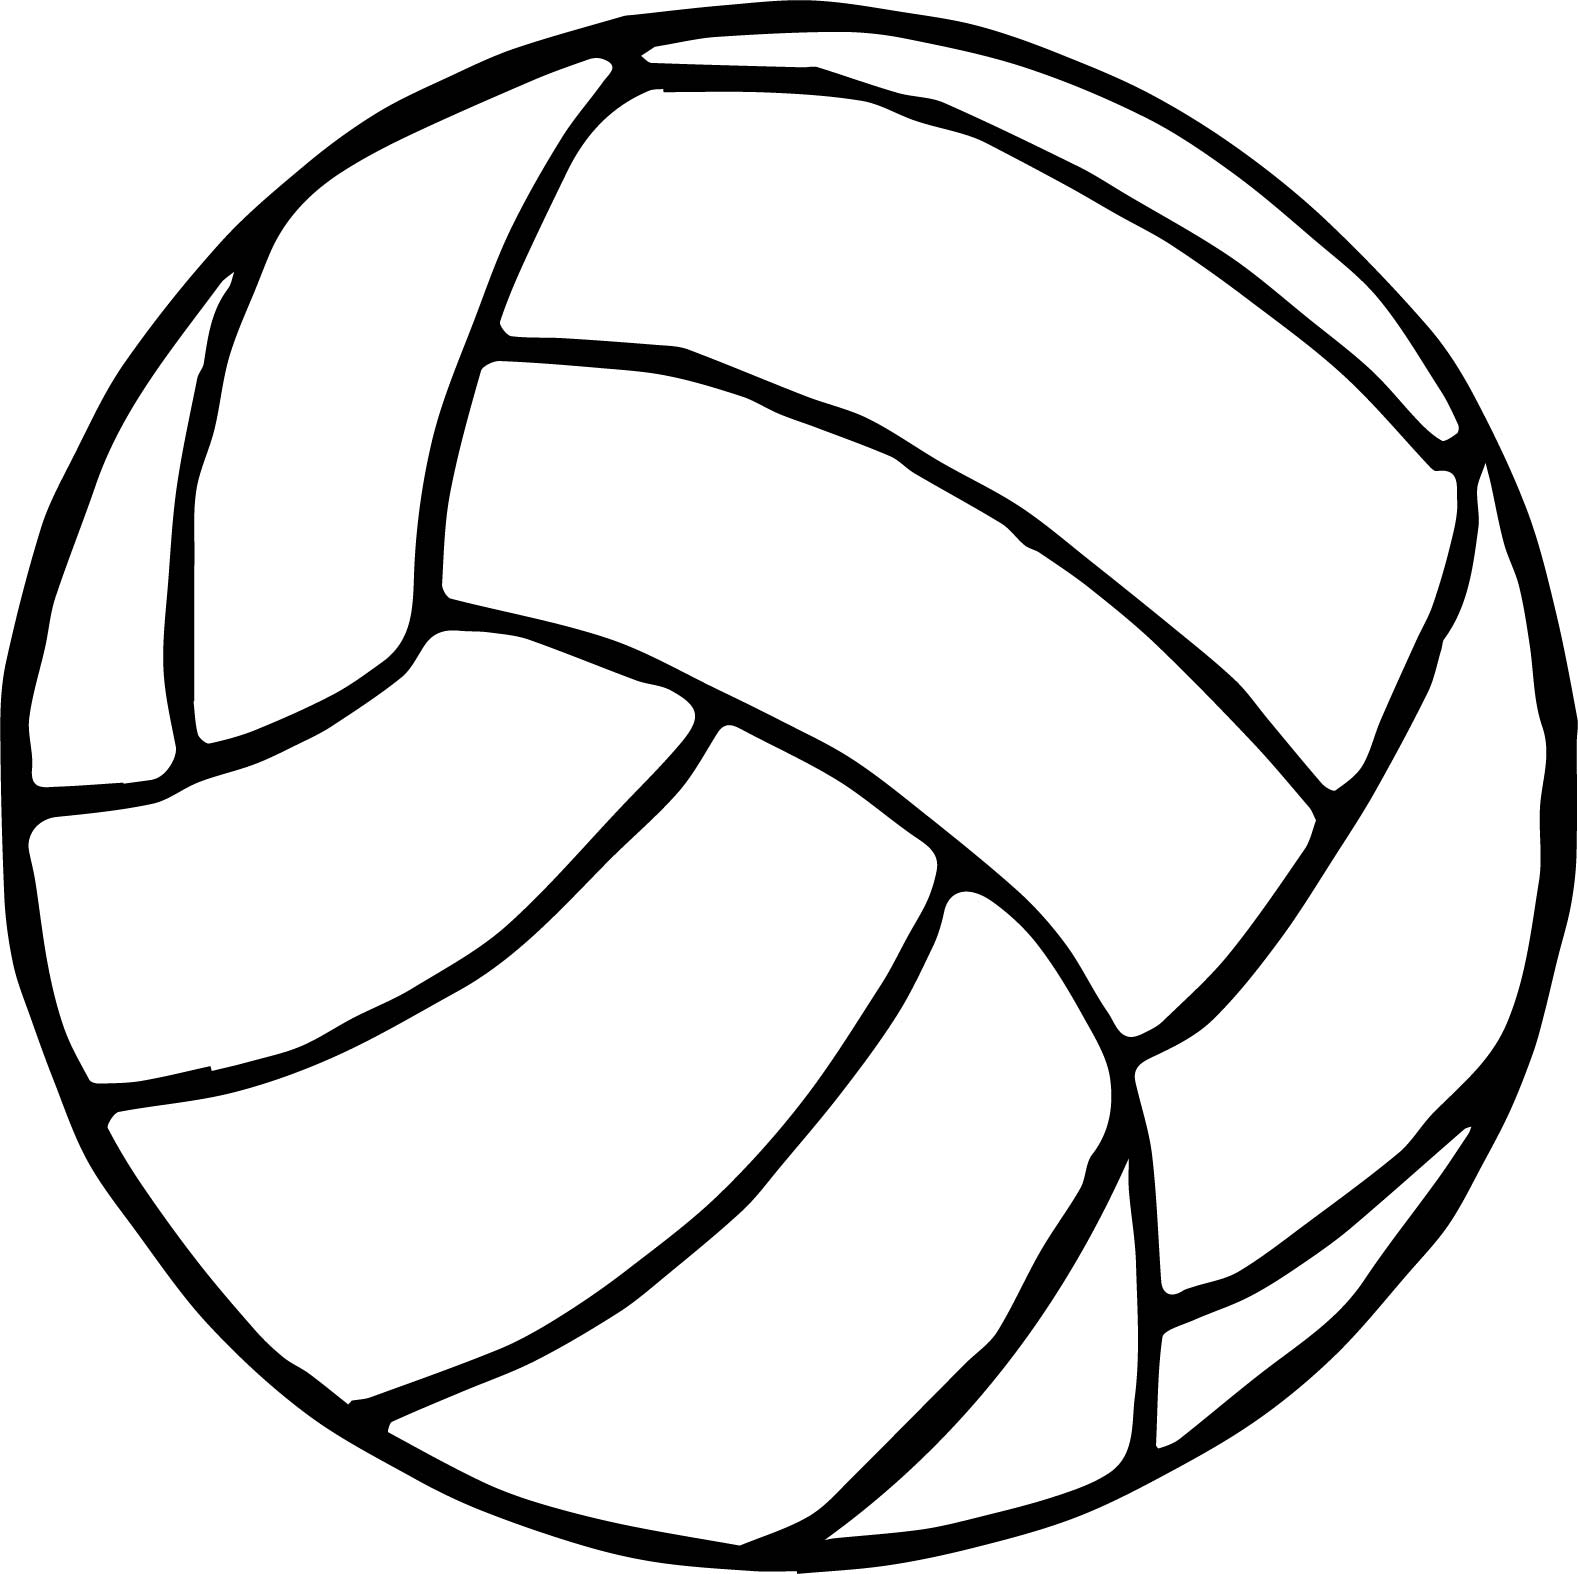 volleyball ball coloring page. Black Bedroom Furniture Sets. Home Design Ideas